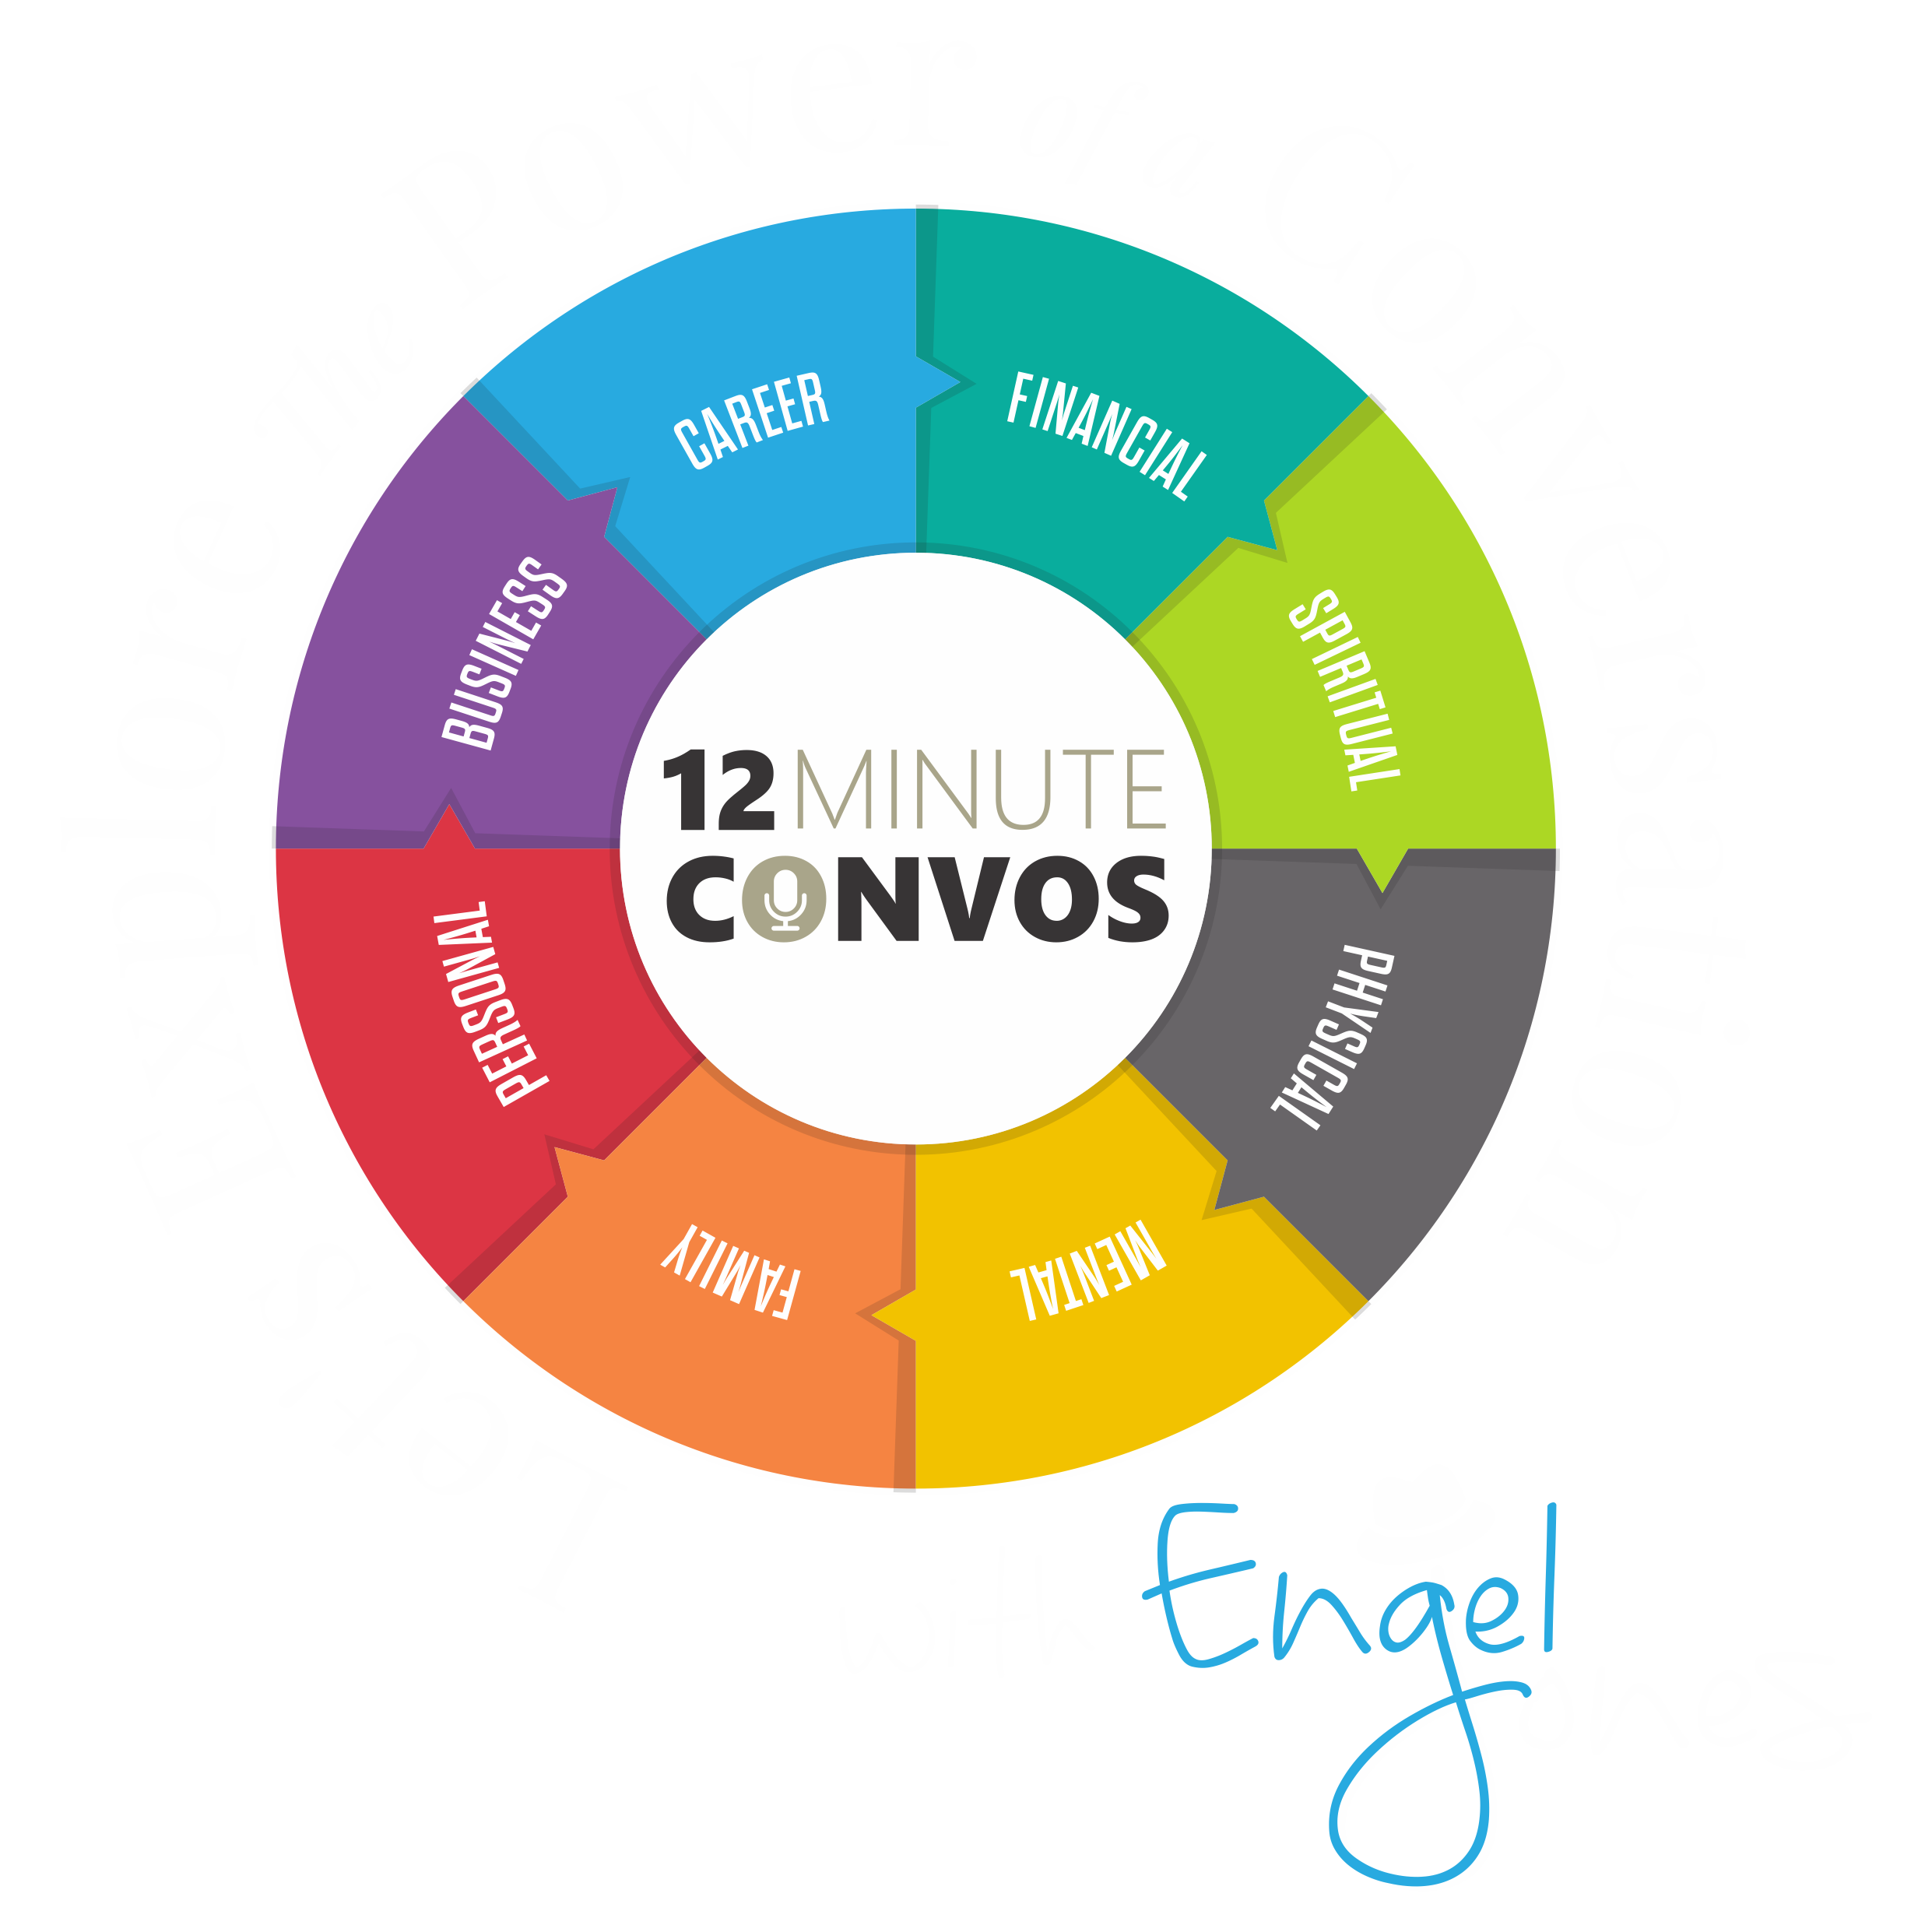 Lets explore the power of a conversation with Engel Jones white